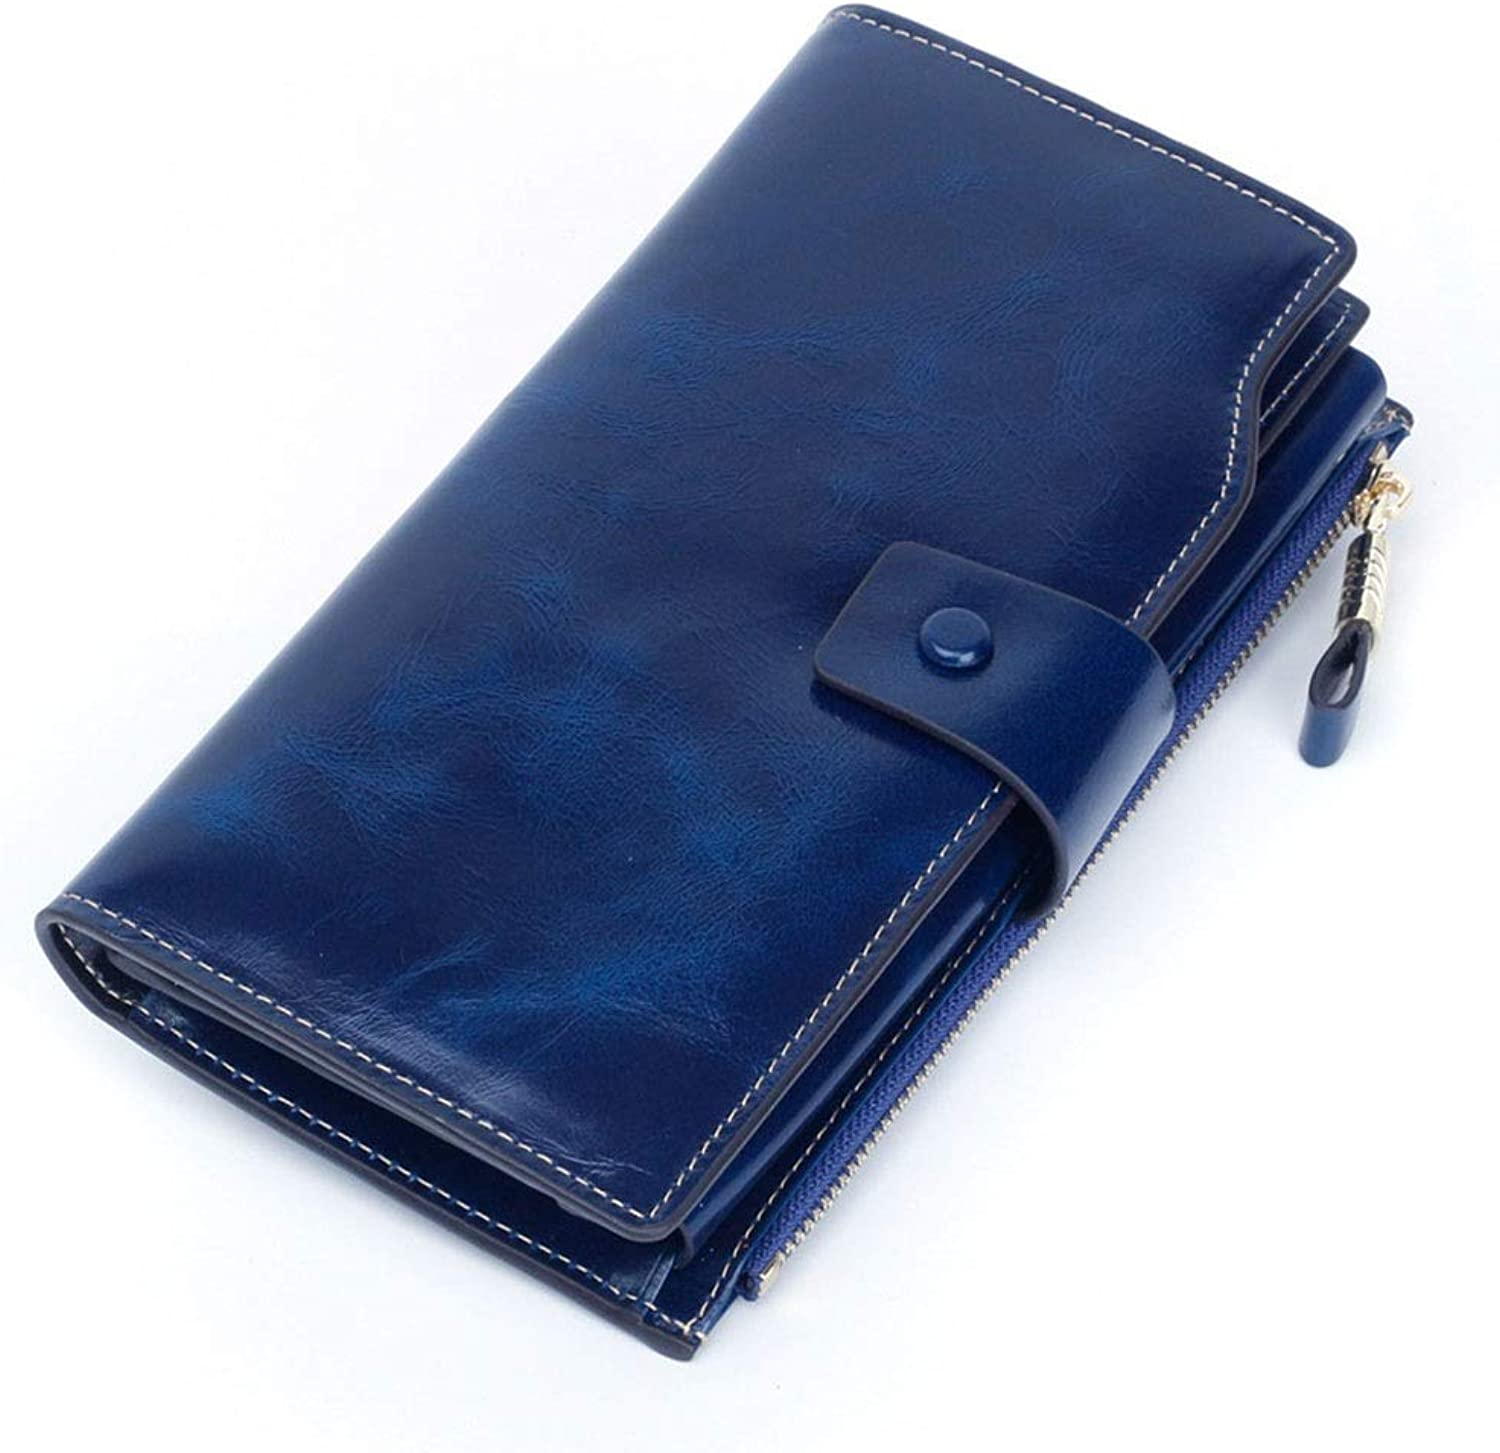 Women's Wallet AntiMagnetic RFID Leather Ladies Wallet MultiCard Female Women's Wallet Splicing Large Capacity Wallet (color   bluee)